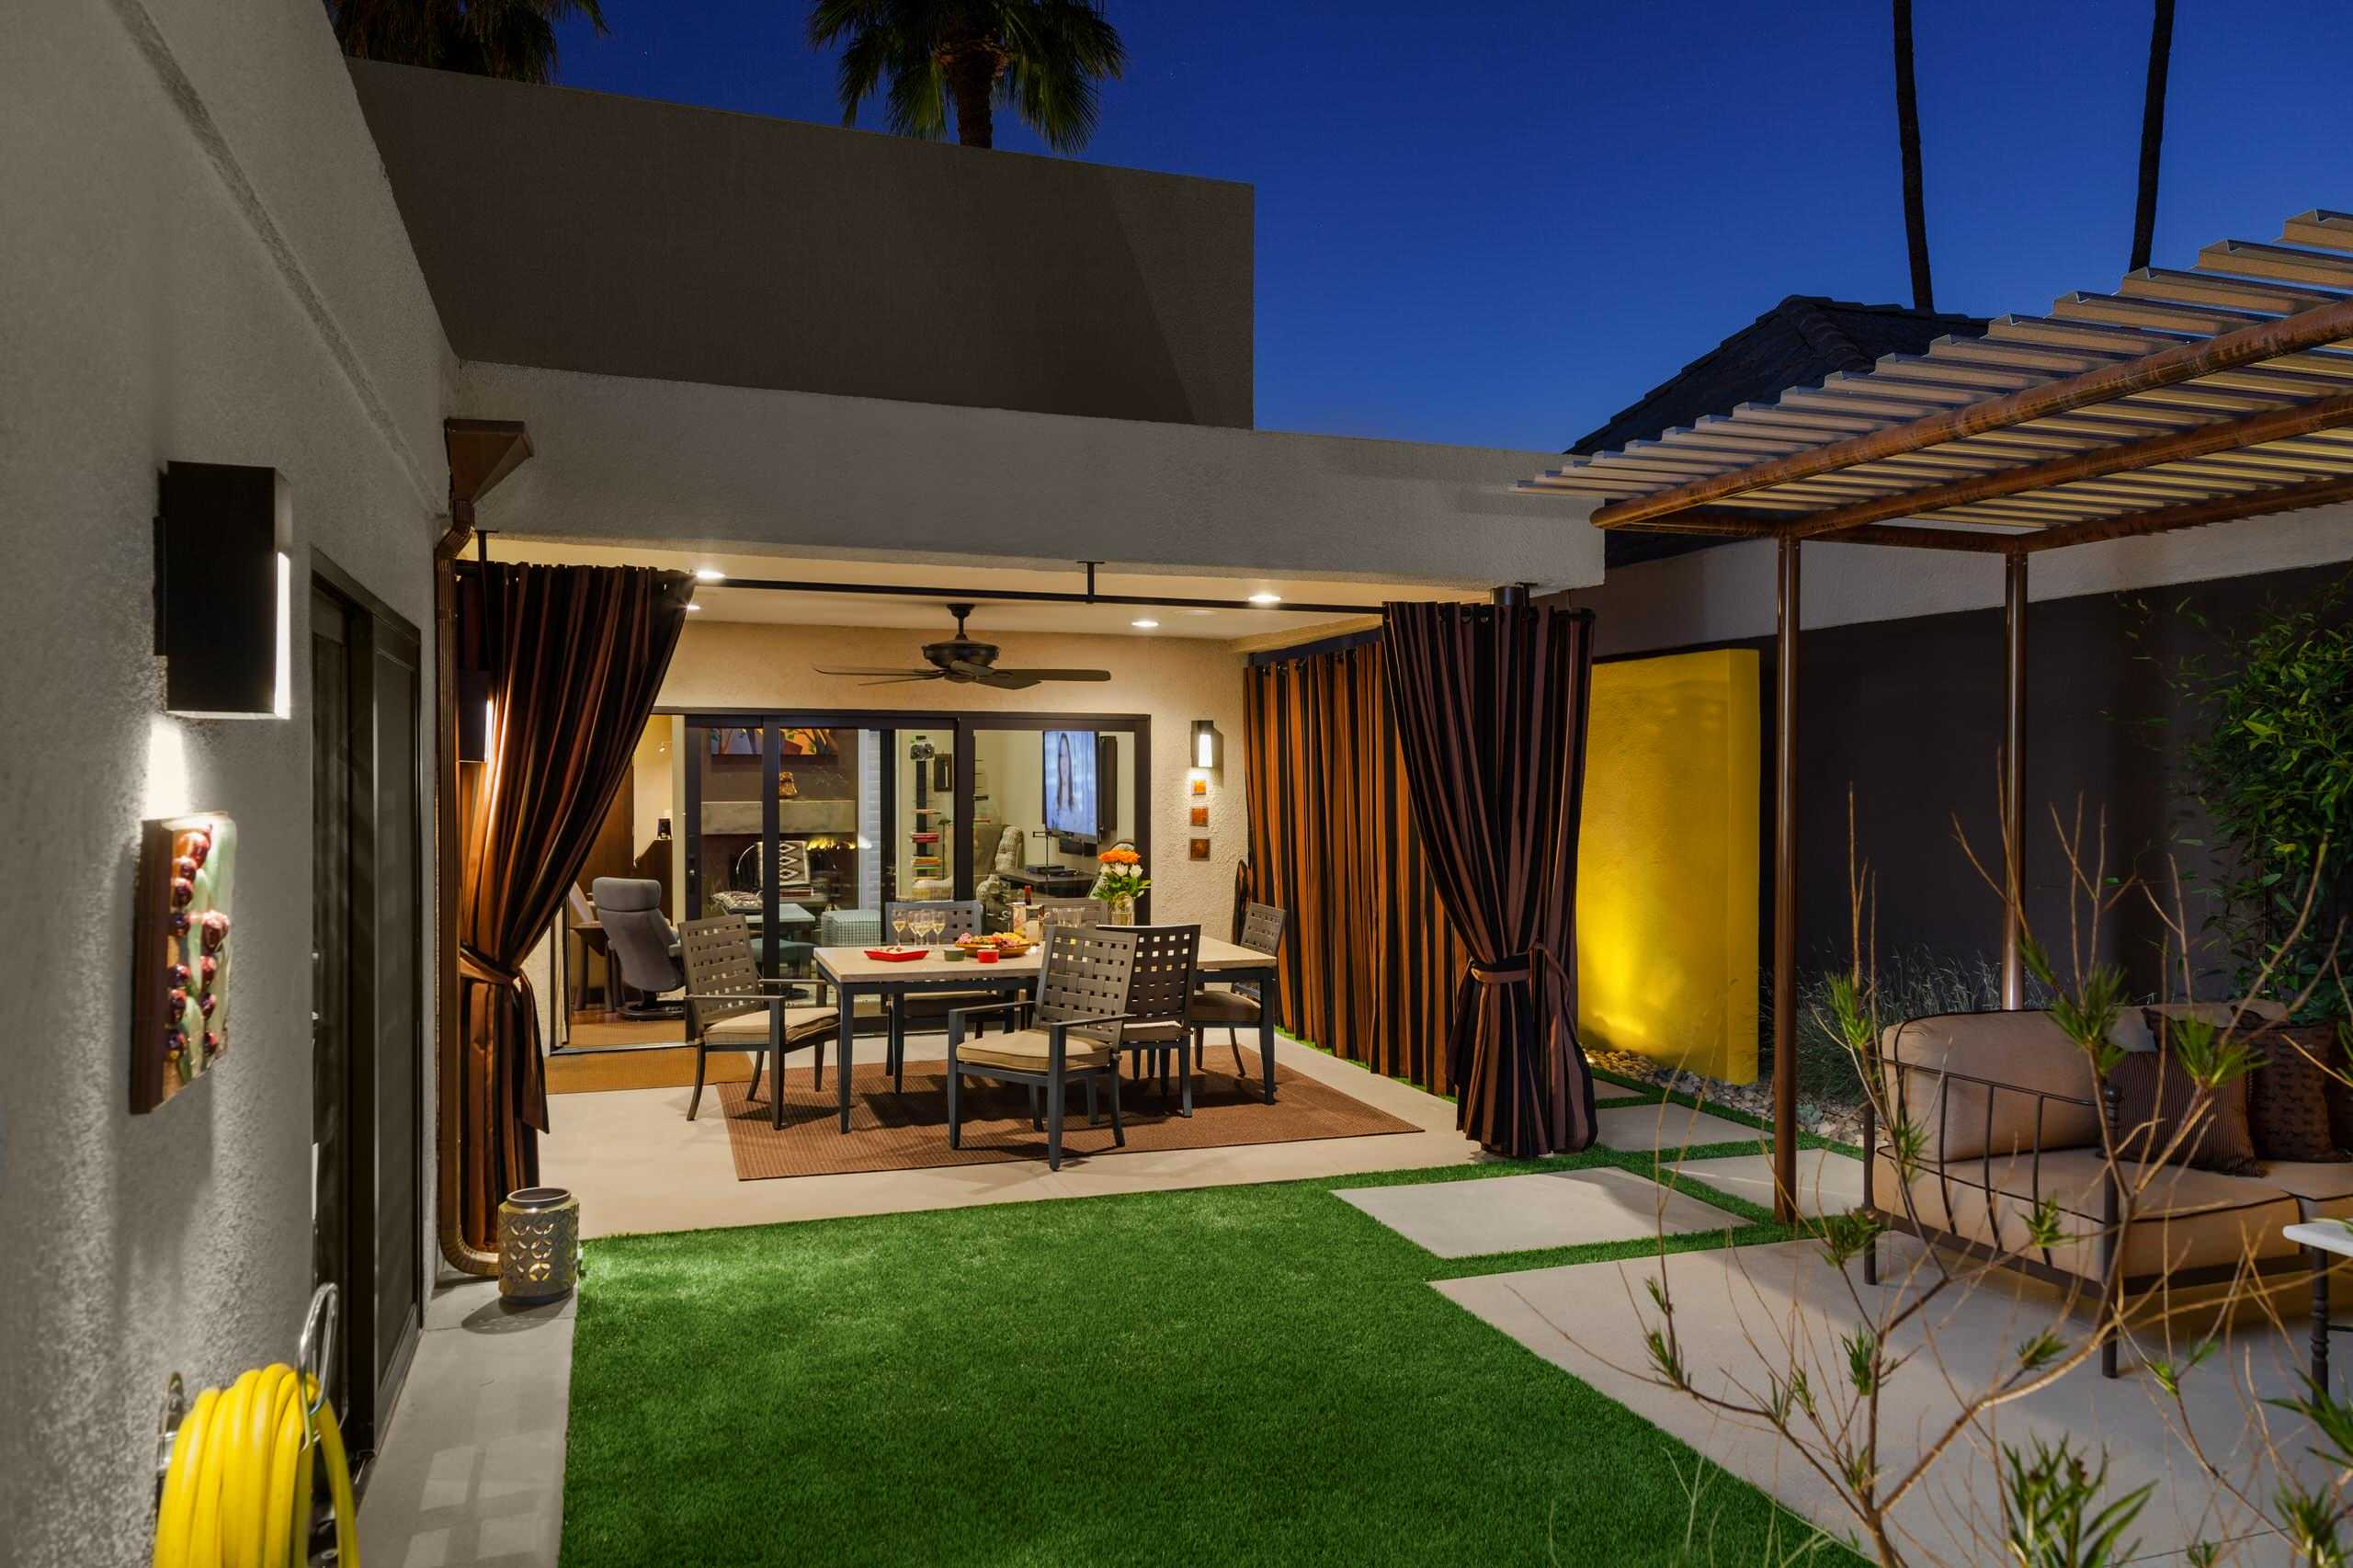 18 Spectacular Modern Patio Designs To Enjoy The Outdoors on Patios Designs  id=11965